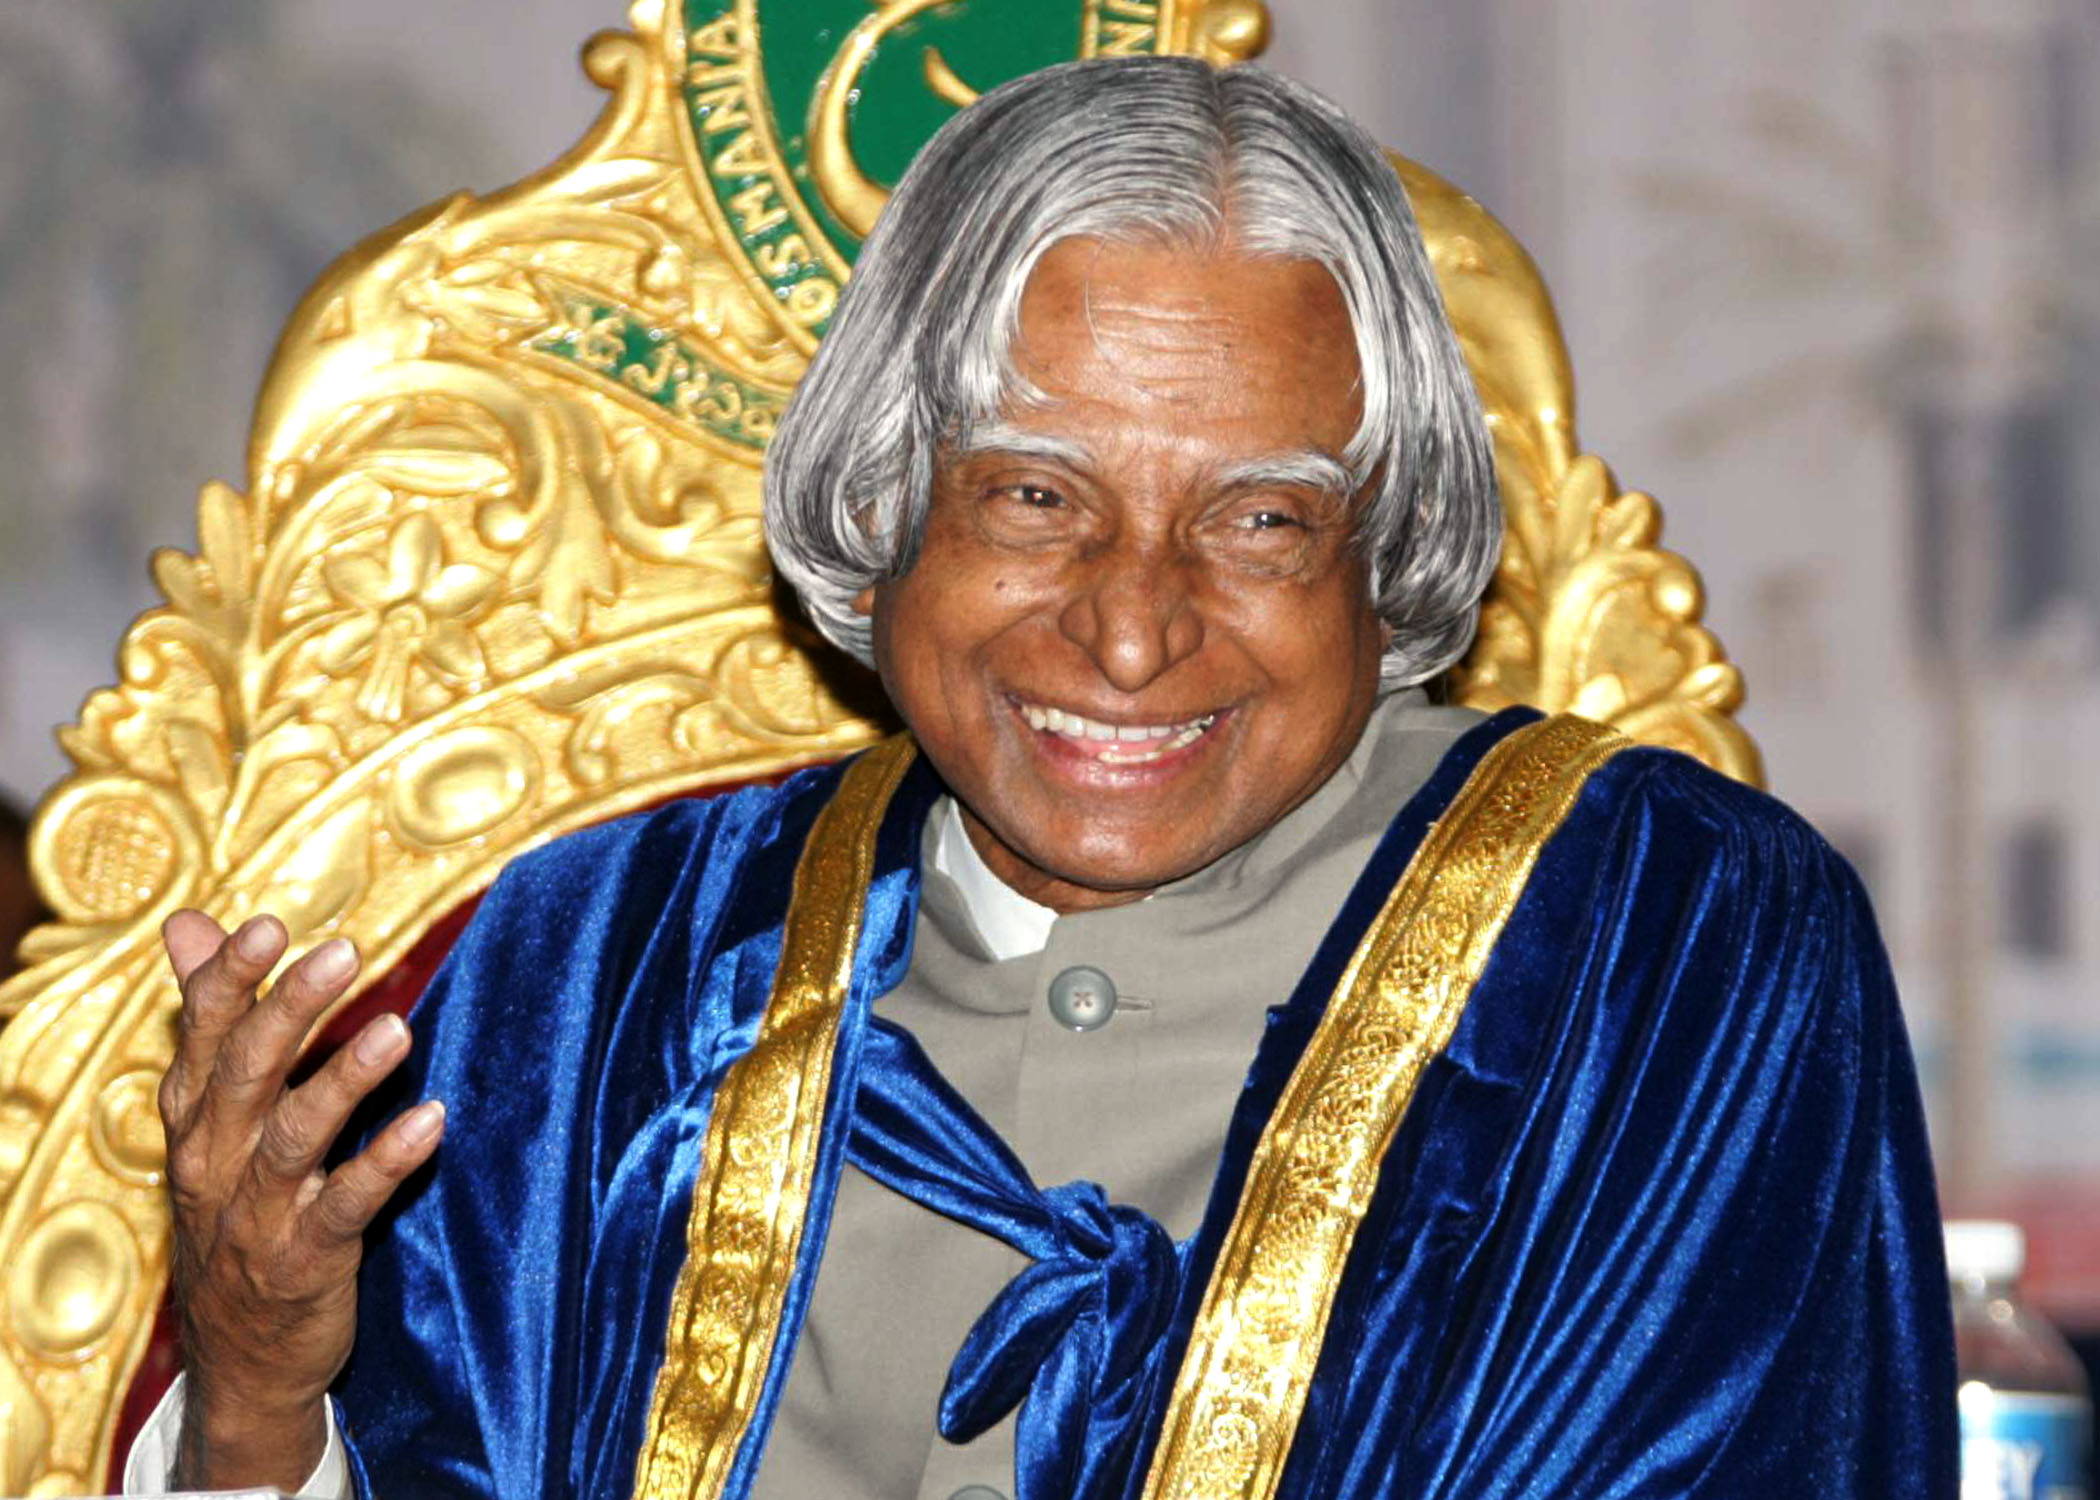 Dr apj abdul kalam former president of india osmania university on their accomplishment of acquiring knowledge and resulting into degrees and certificates i extend my greetings to the teachers who kristyandbryce Images